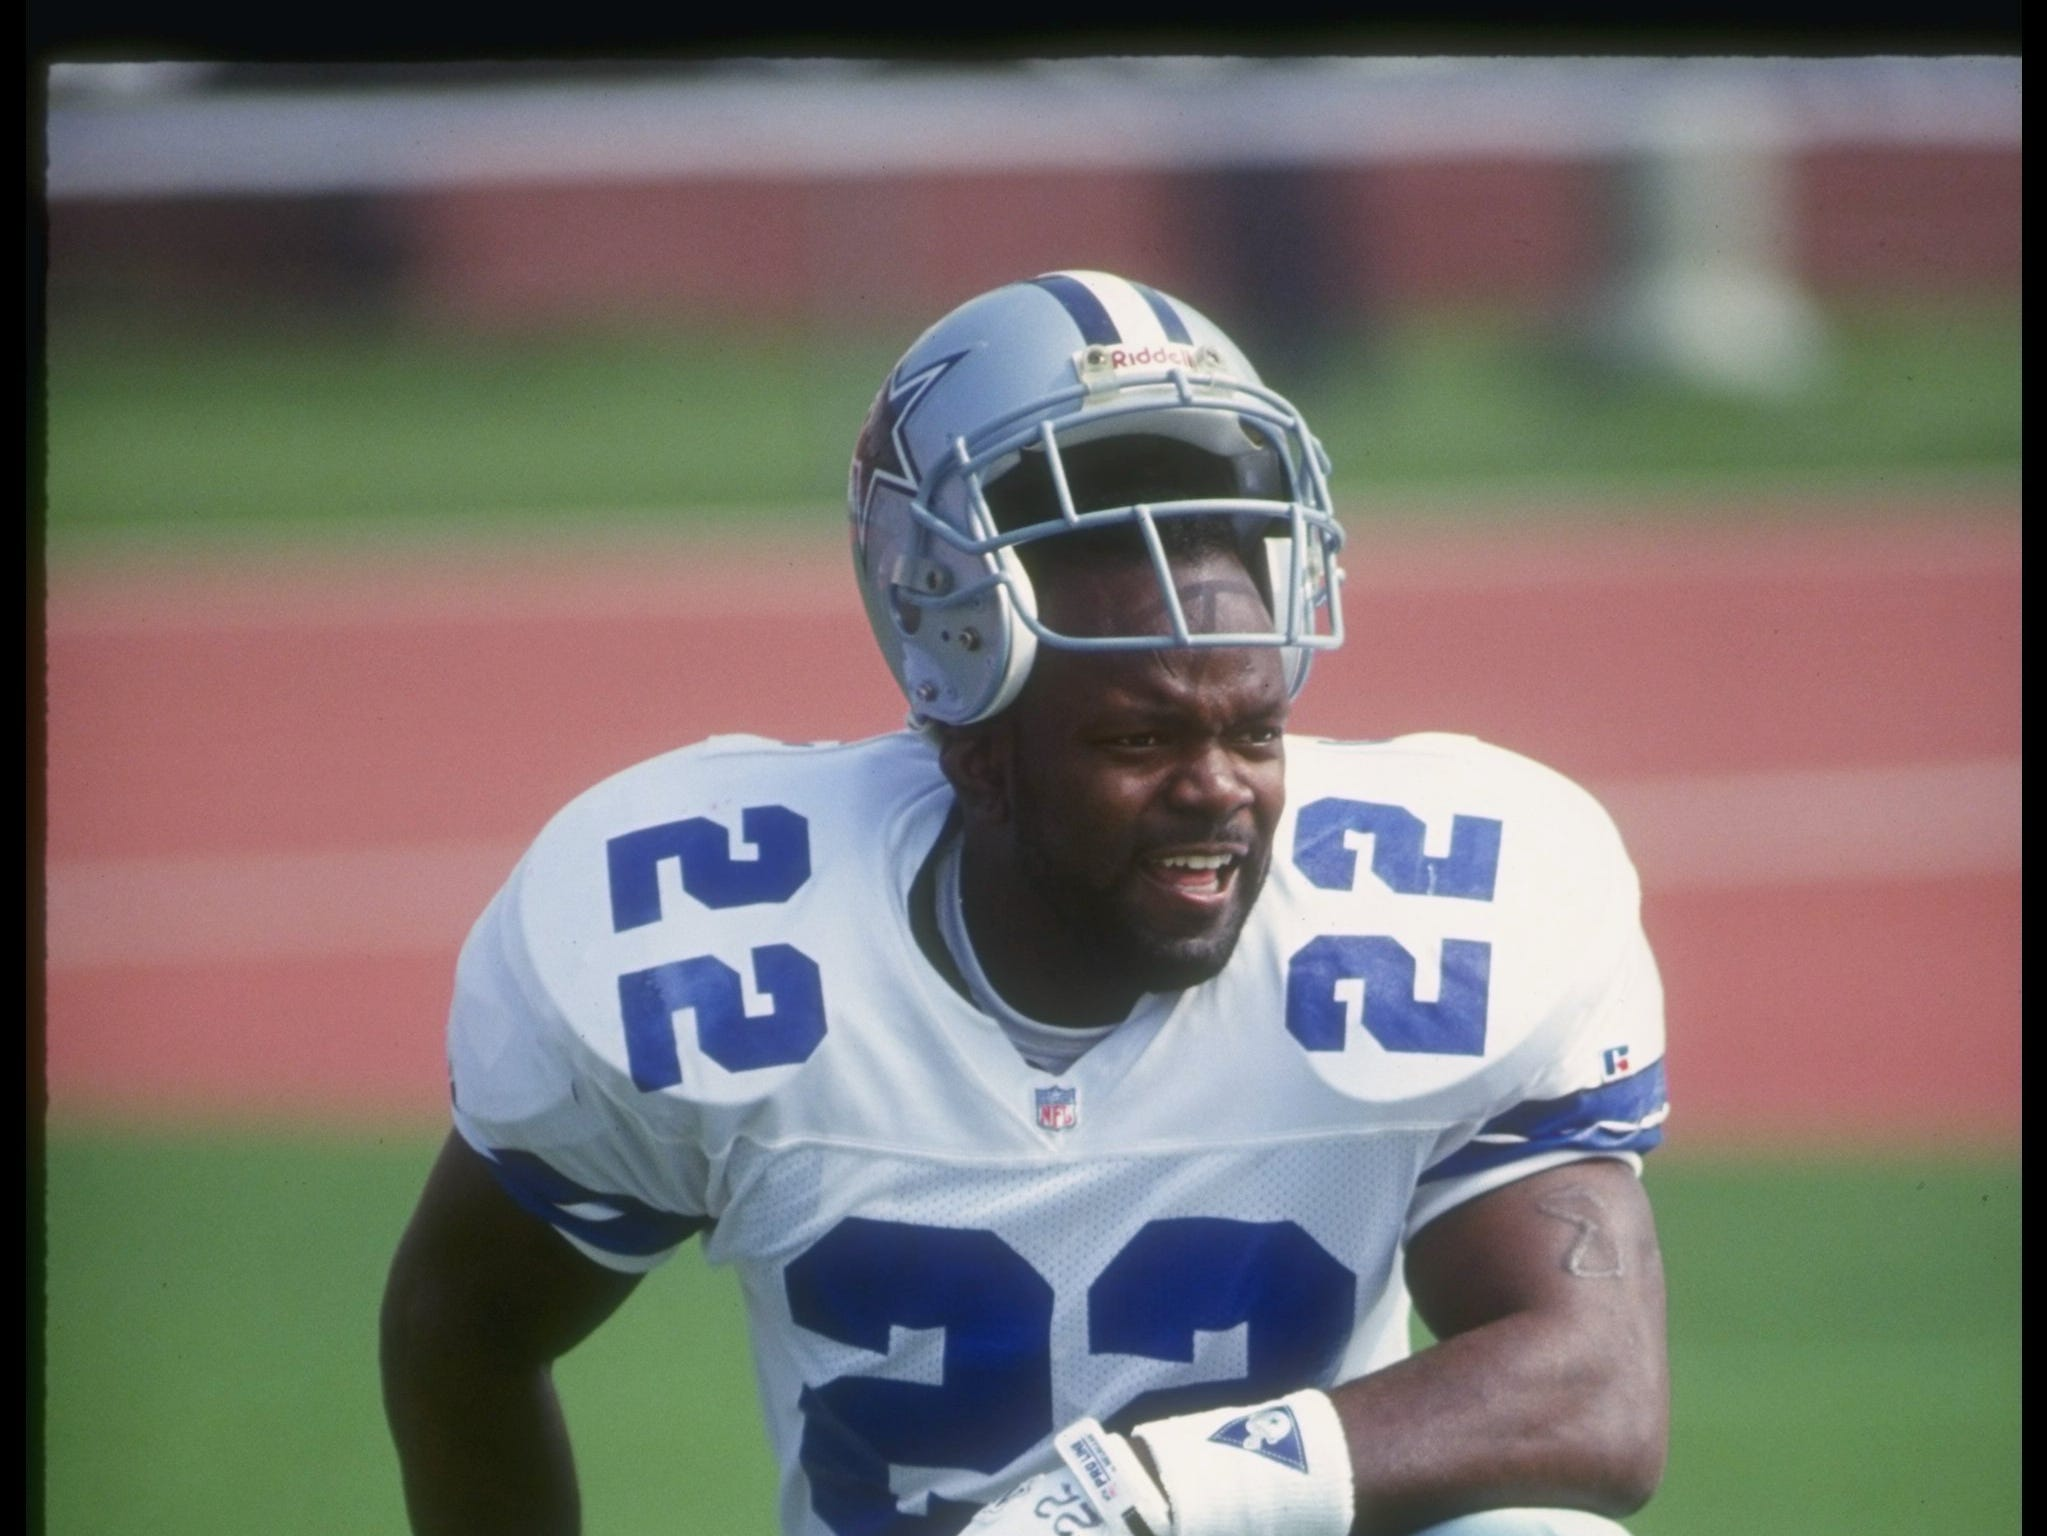 Running back Emmitt Smith of the Dallas Cowboys looks on during a game against the Los Angeles Raiders at the Coliseum in Los Angeles, California.  The Cowboys won the game, 28-13. Mandatory Credit: Markus Boesch  /Allsport